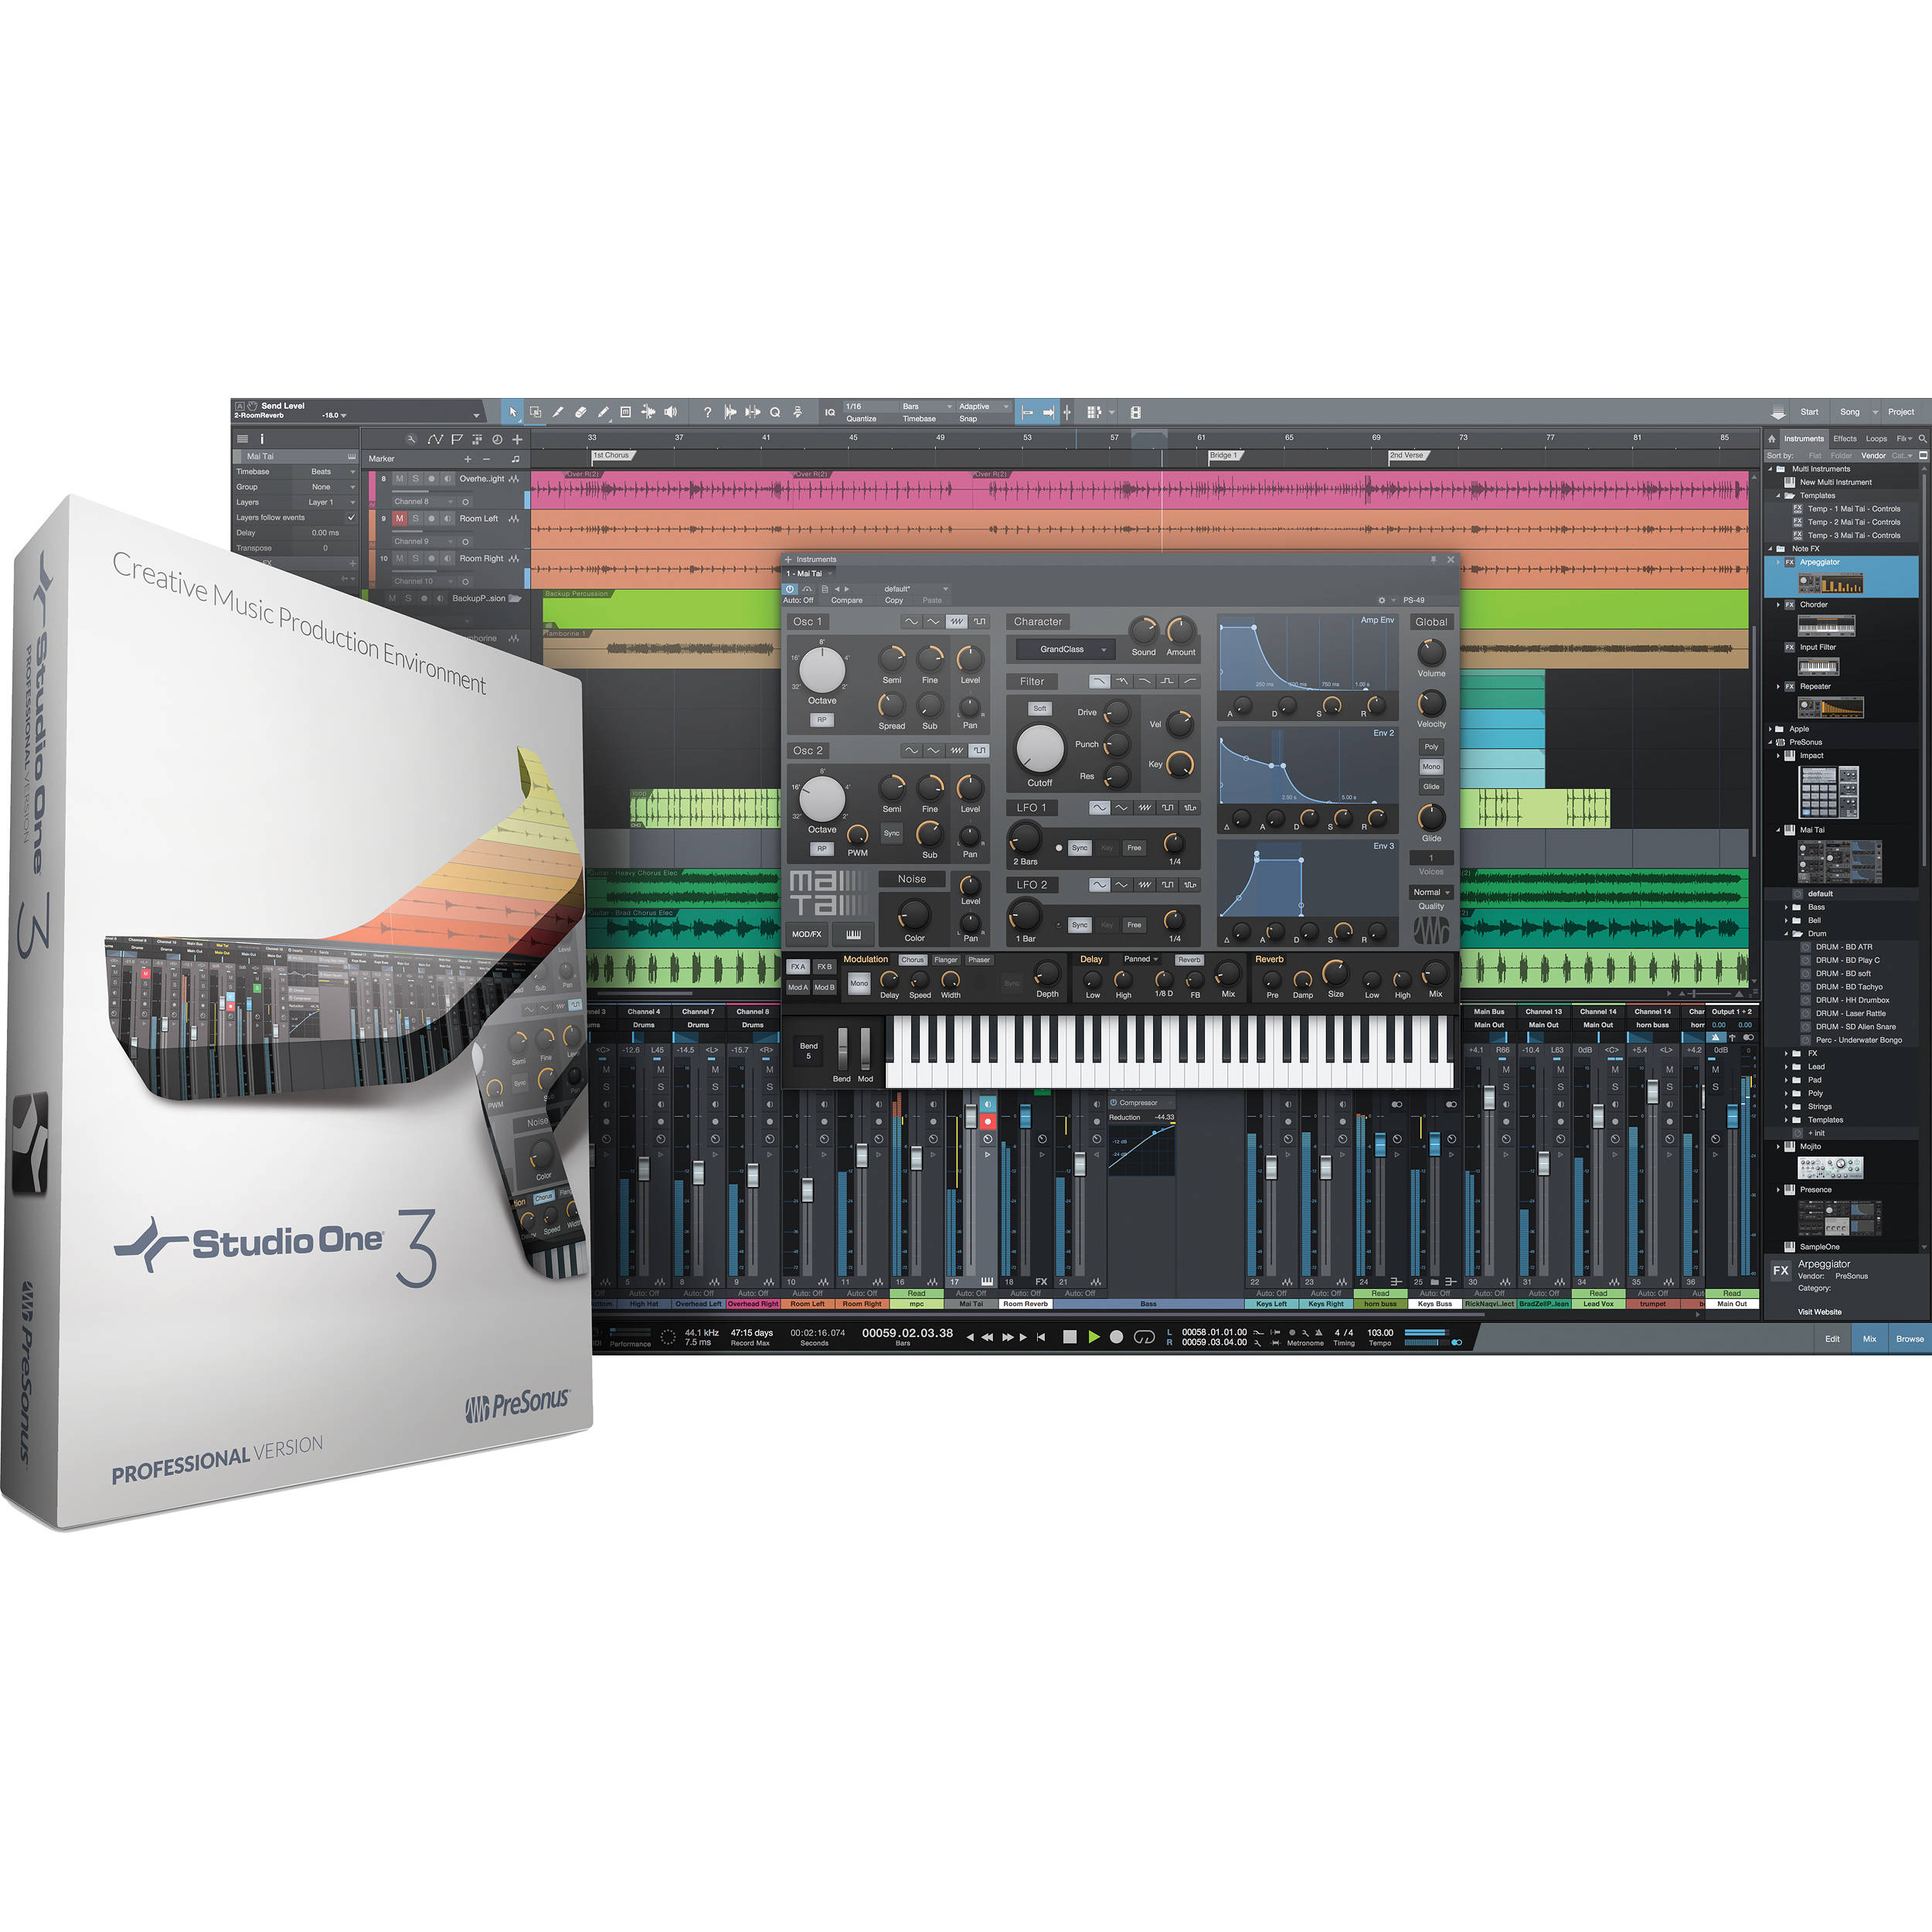 studio one 3 software free download